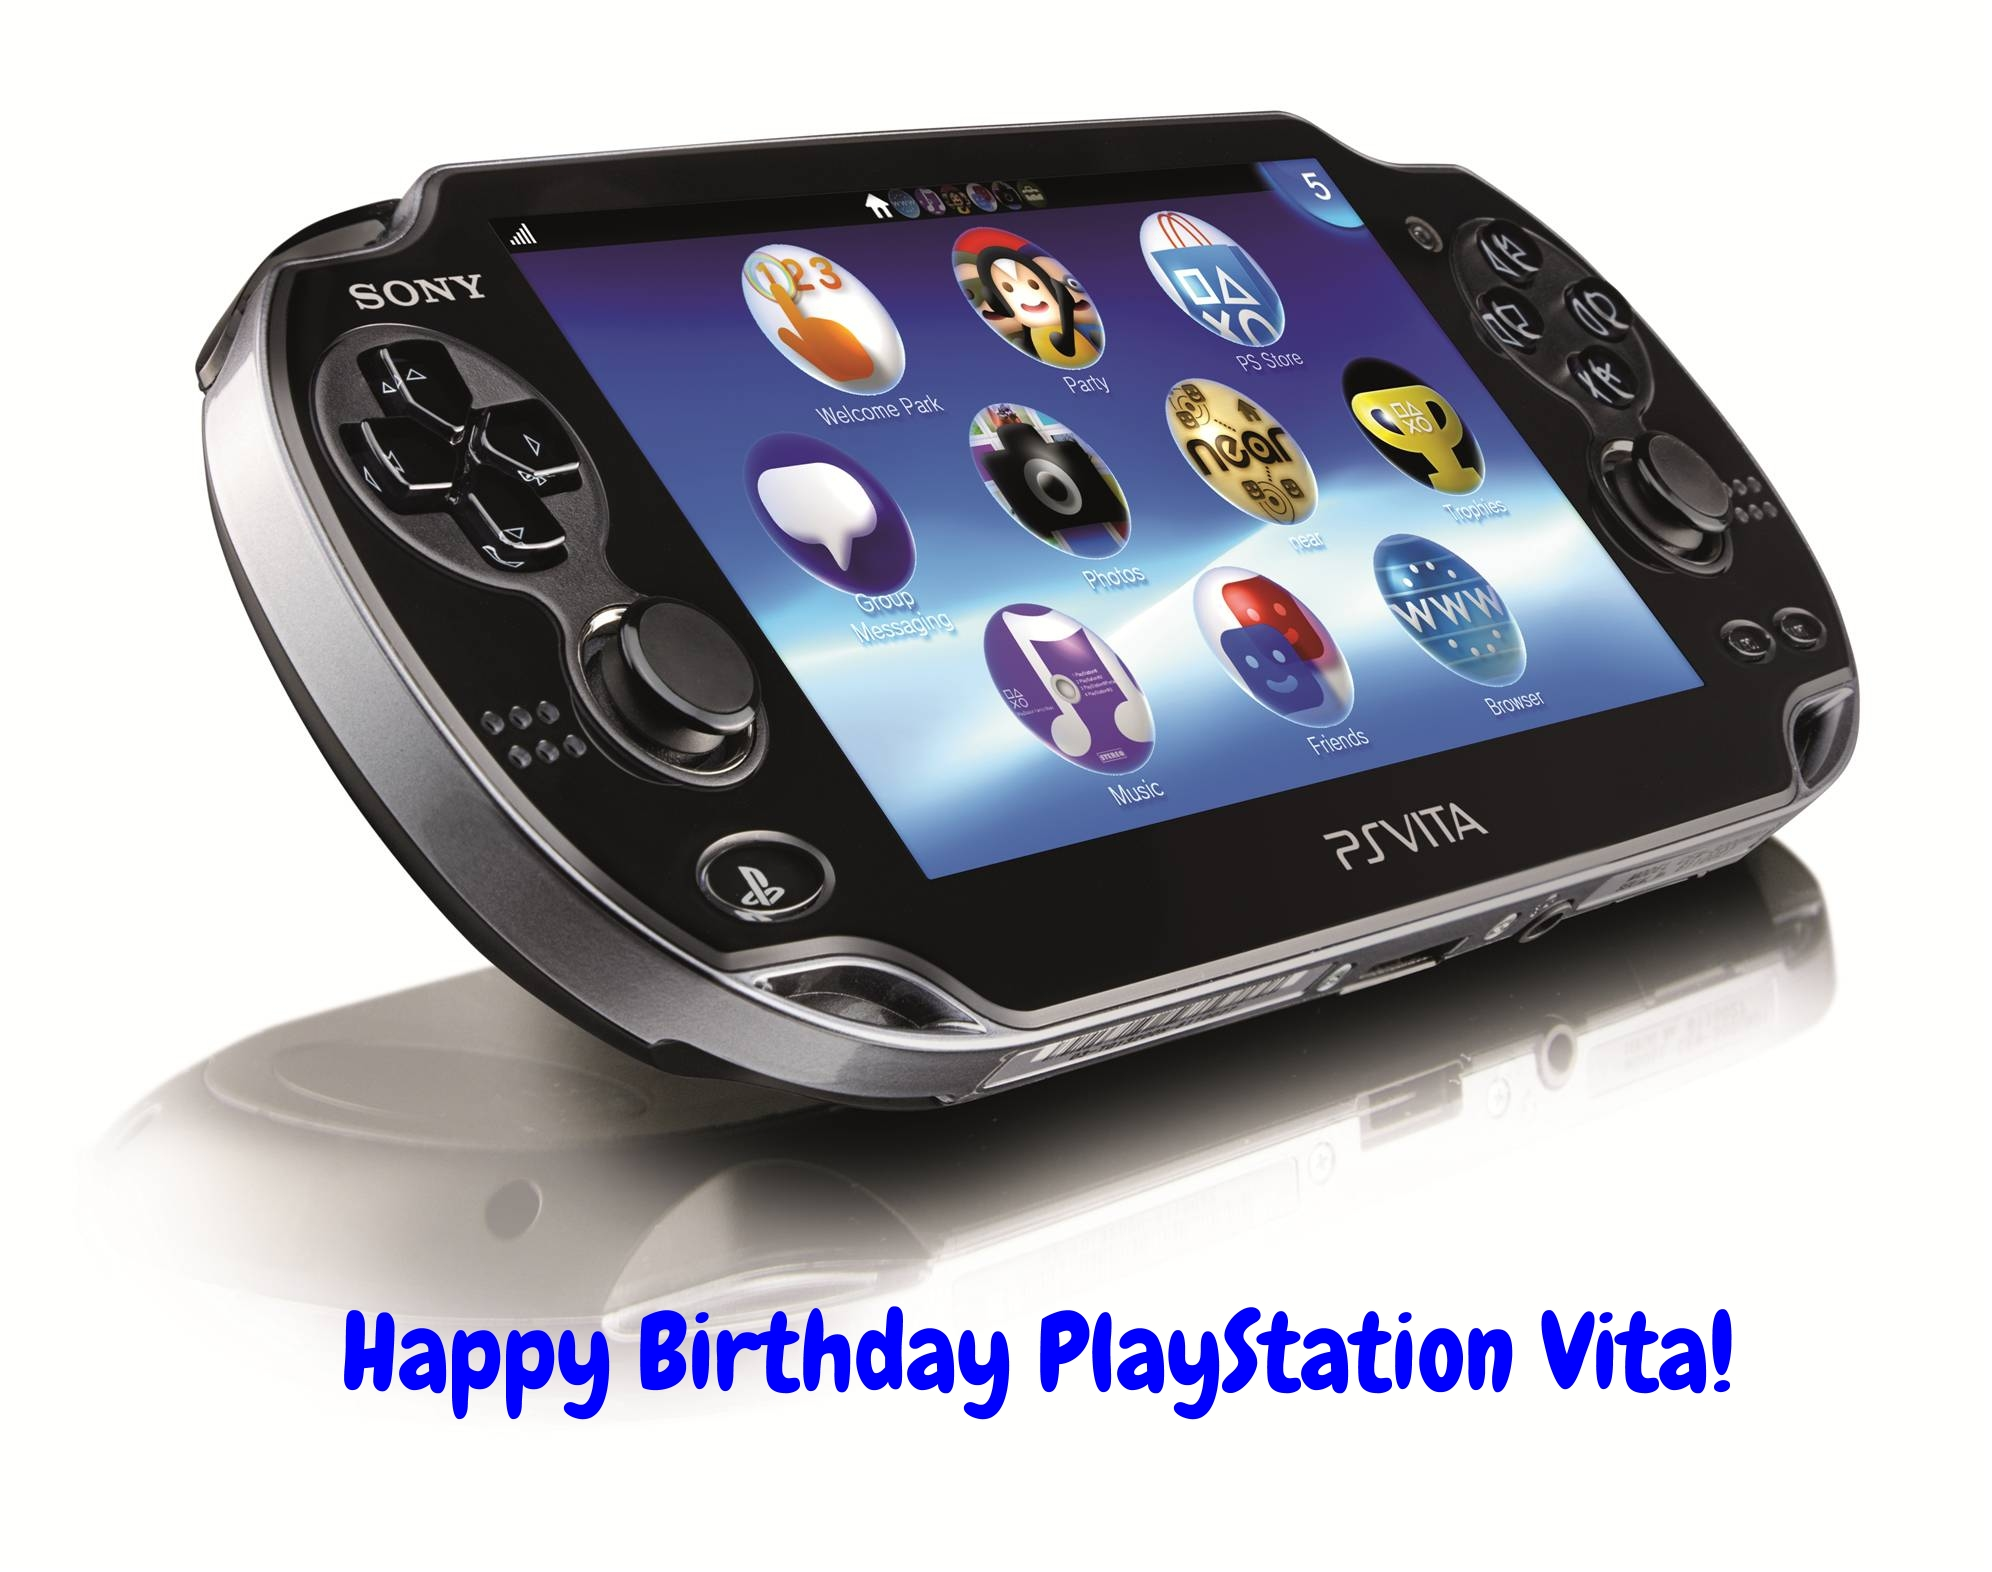 Playstation_Vita.jpg